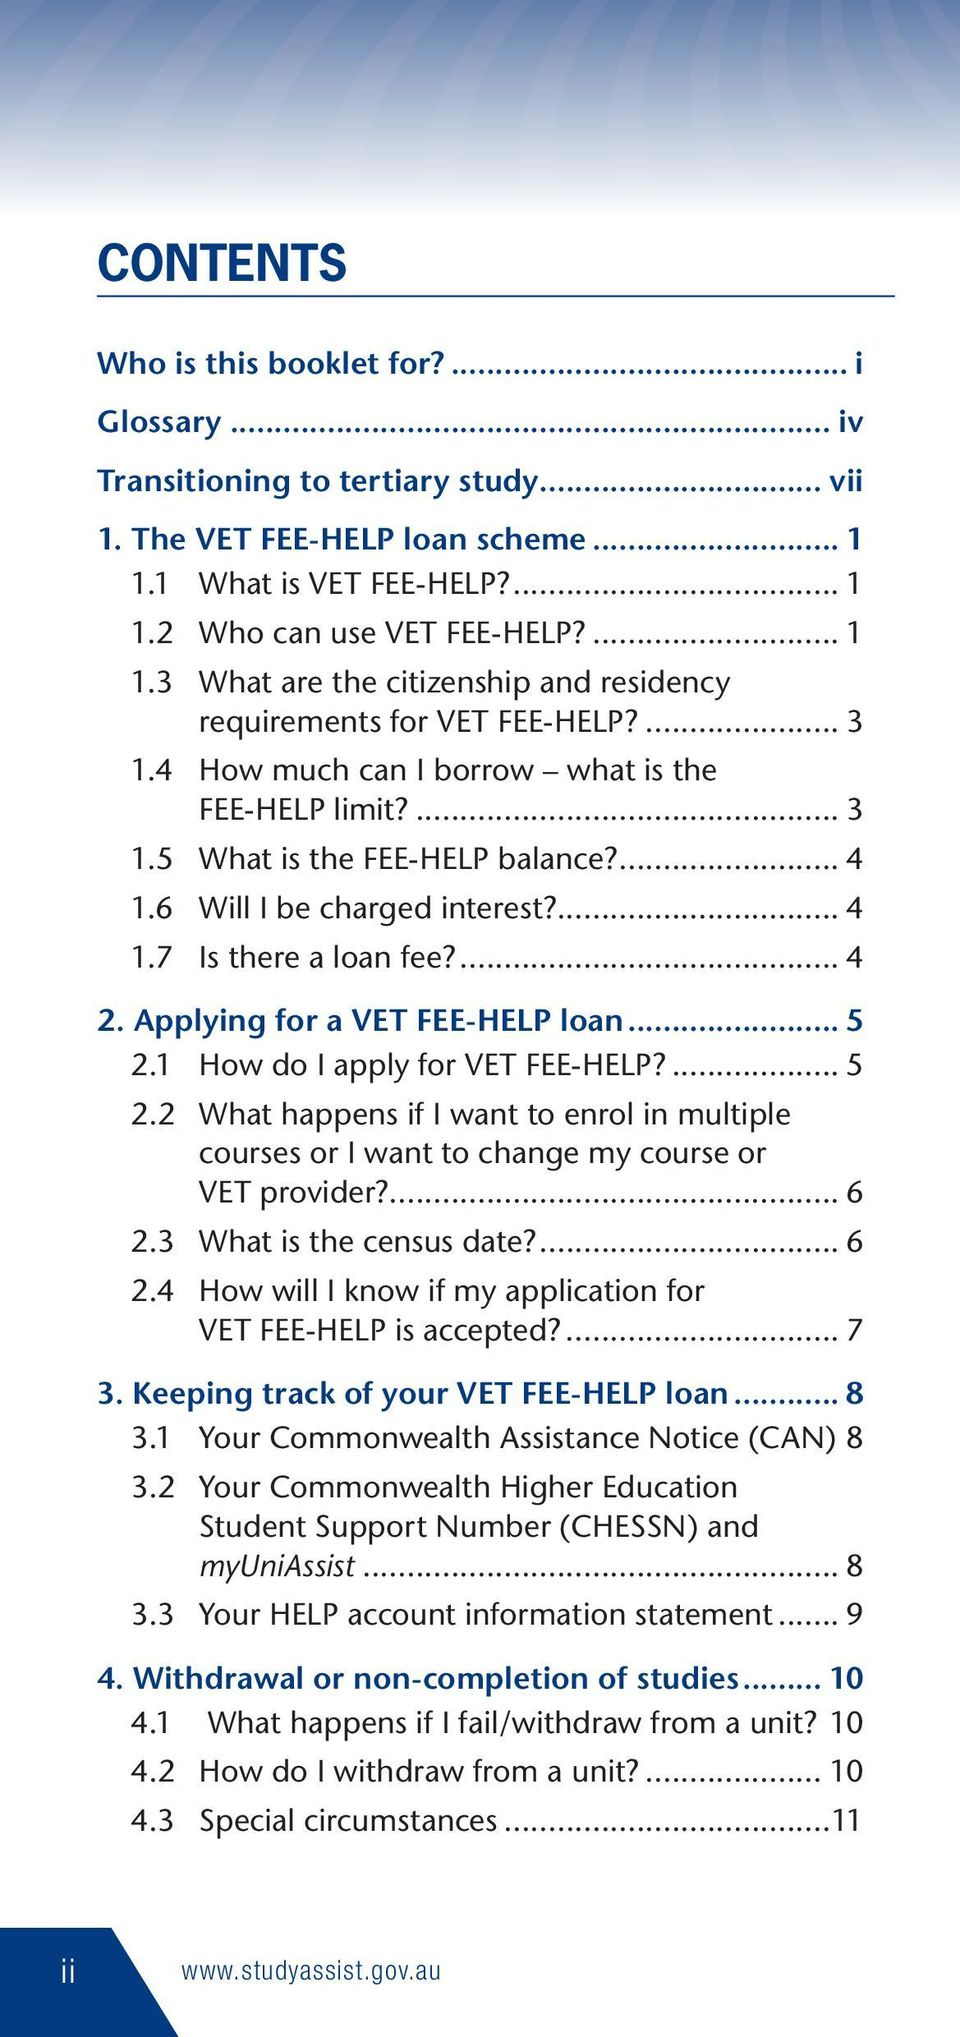 ... 3 1.5 What is the FEE-HELP balance?... 4 1.6 Will I be charged interest?... 4 1.7 Is there a loan fee?... 4 2. Applying for a VET FEE-HELP loan... 5 2.